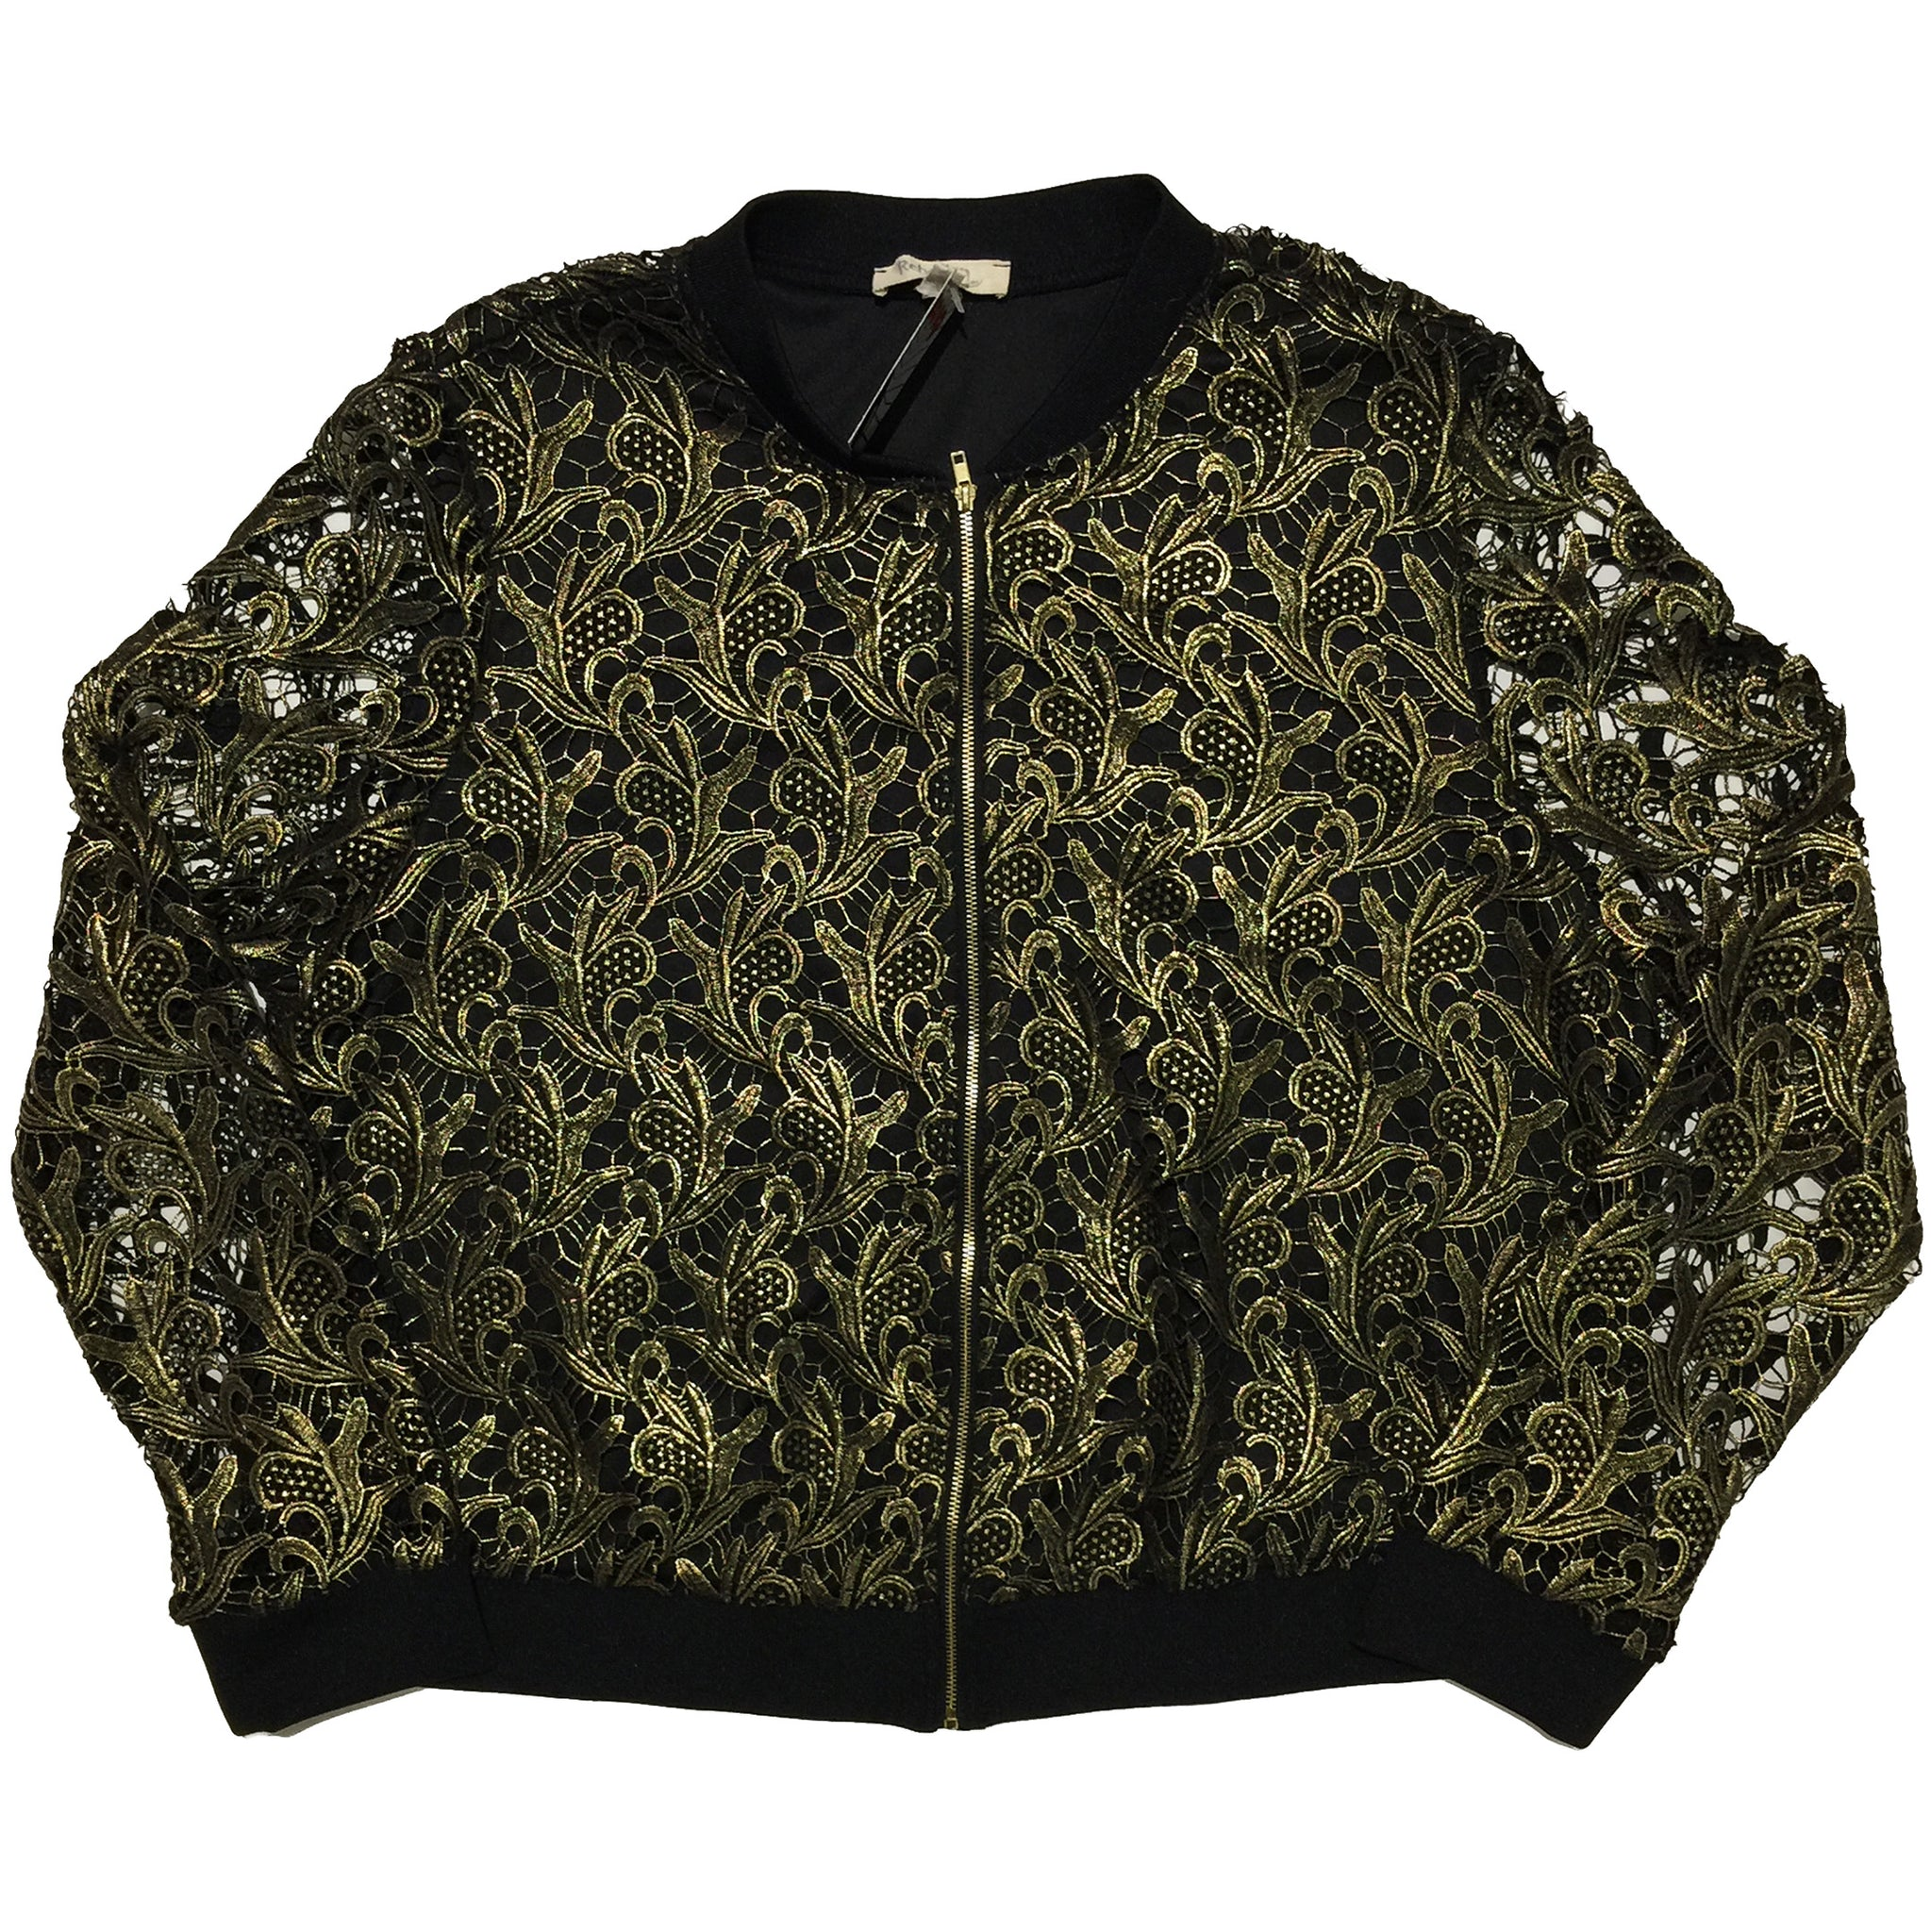 Rebellion Again Black Jacket with Gold Embellishment and Sheer Sleeves